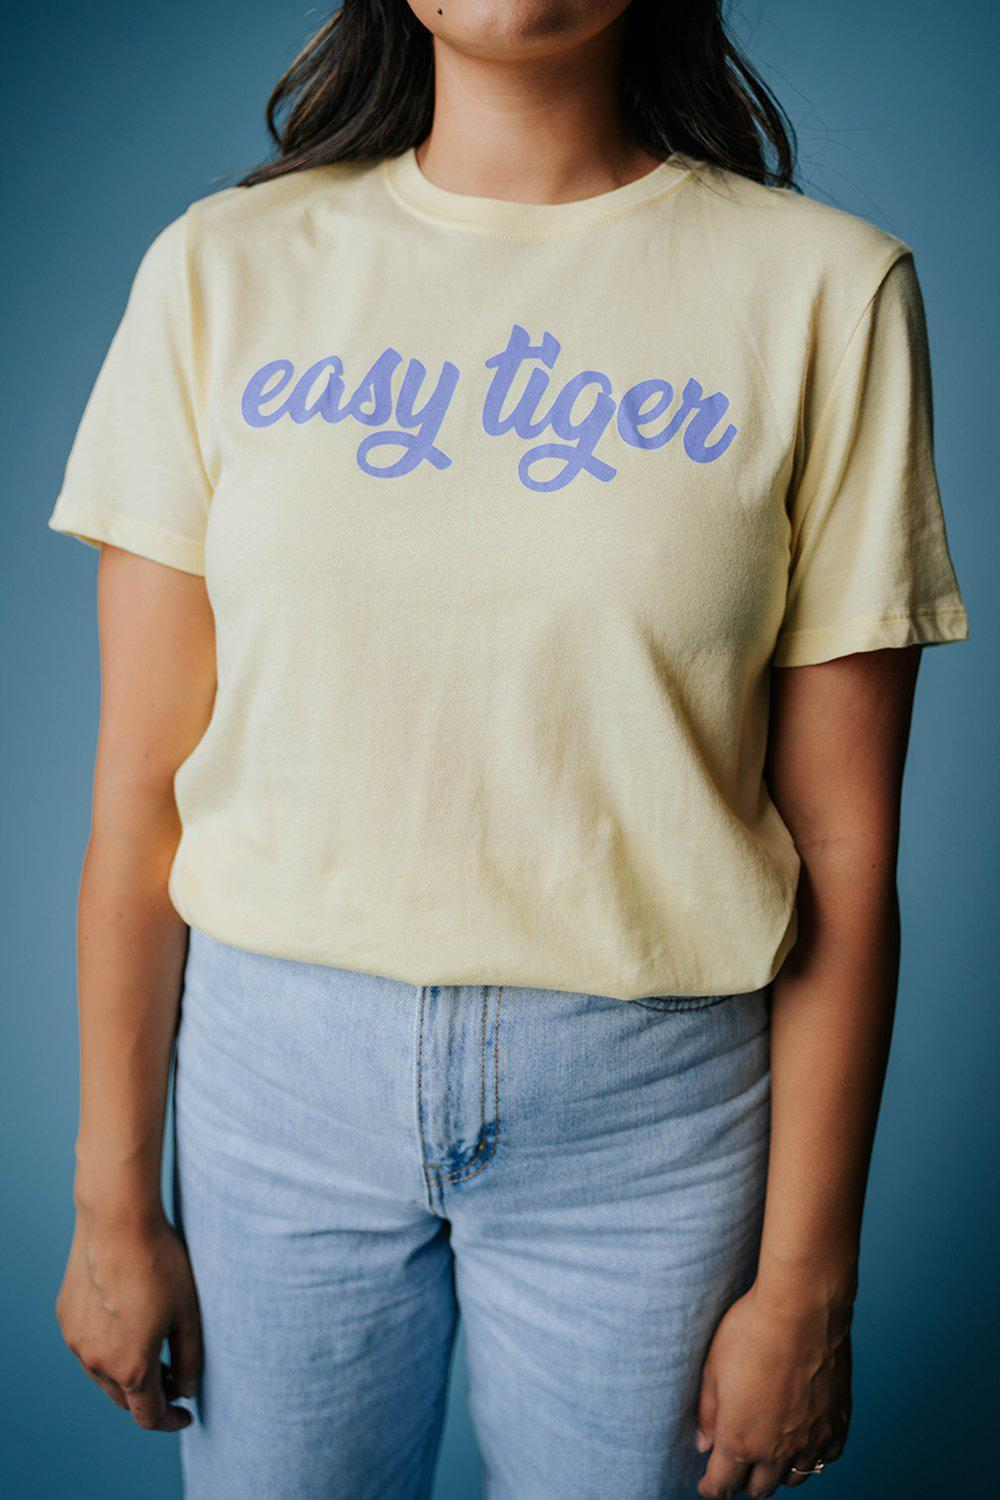 Take It Easy Tiger Tee, cladandcloth.